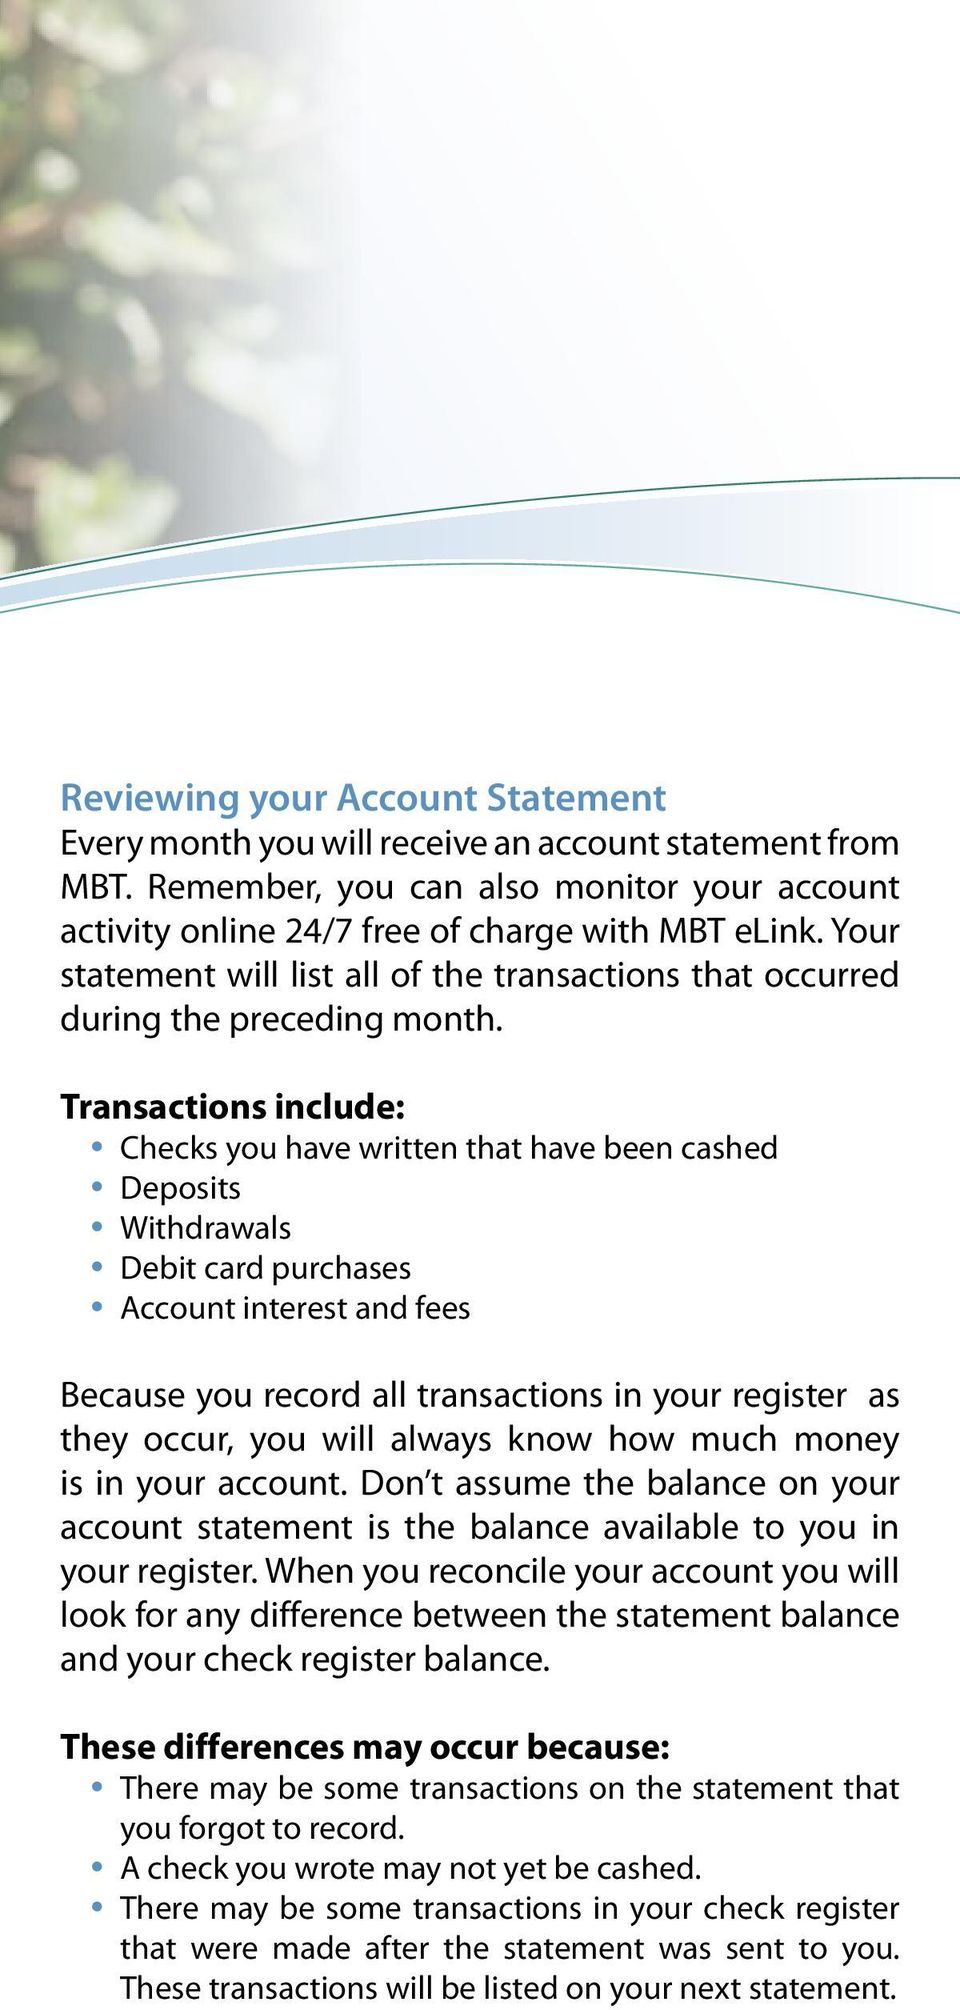 Transactions include: Checks you have written that have been cashed Deposits Withdrawals Debit card purchases Account interest and fees Because you record all transactions in your register as they